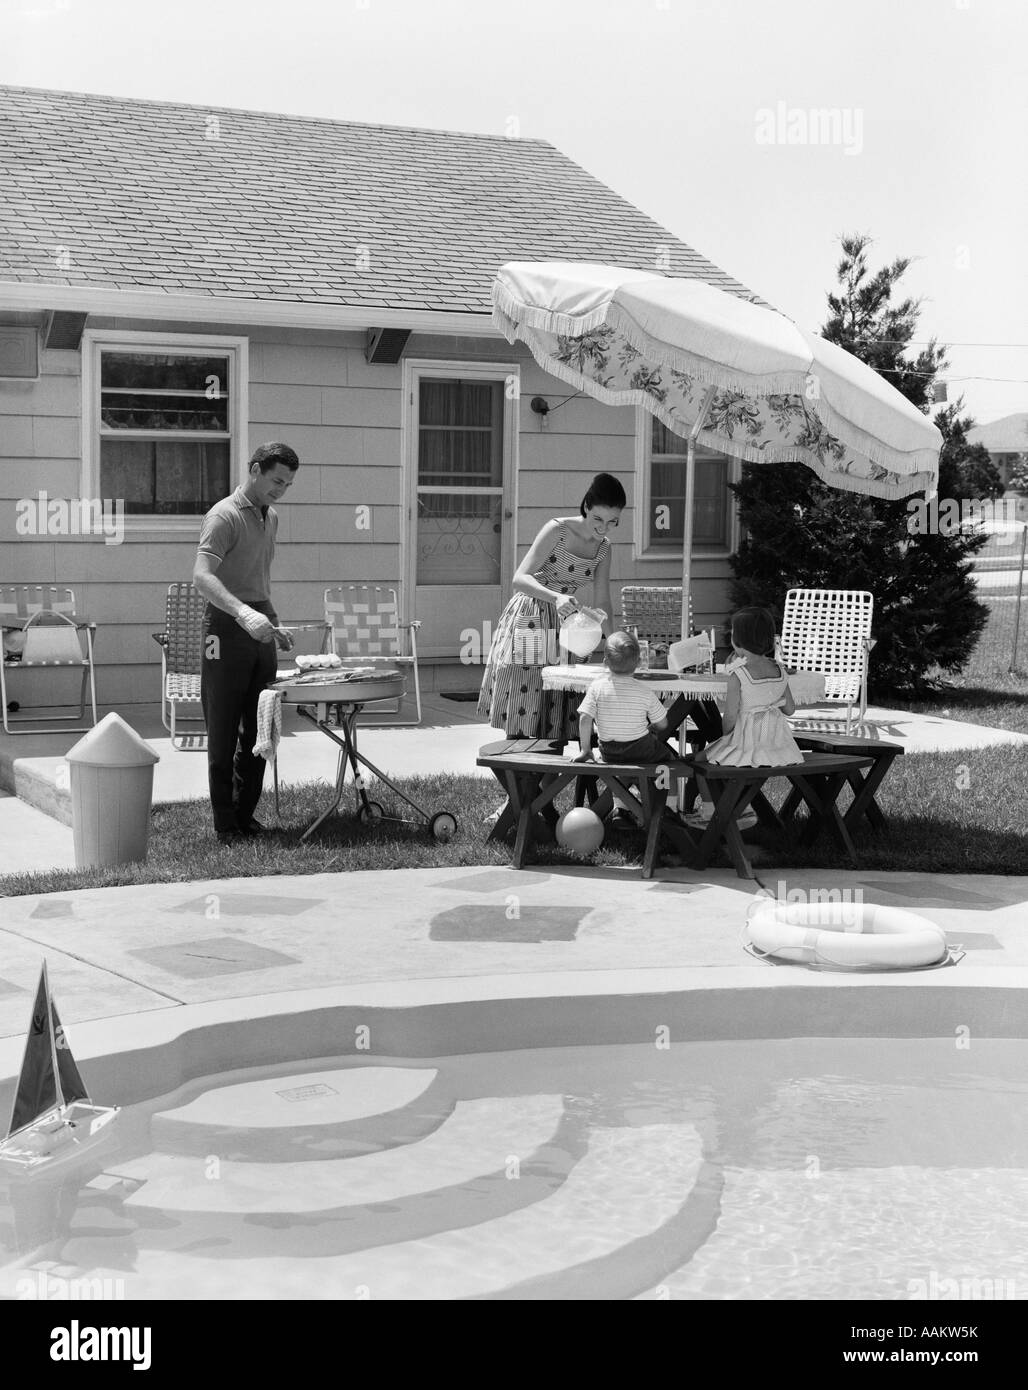 1960s summer outdoor family of four backyard barbeque by pool